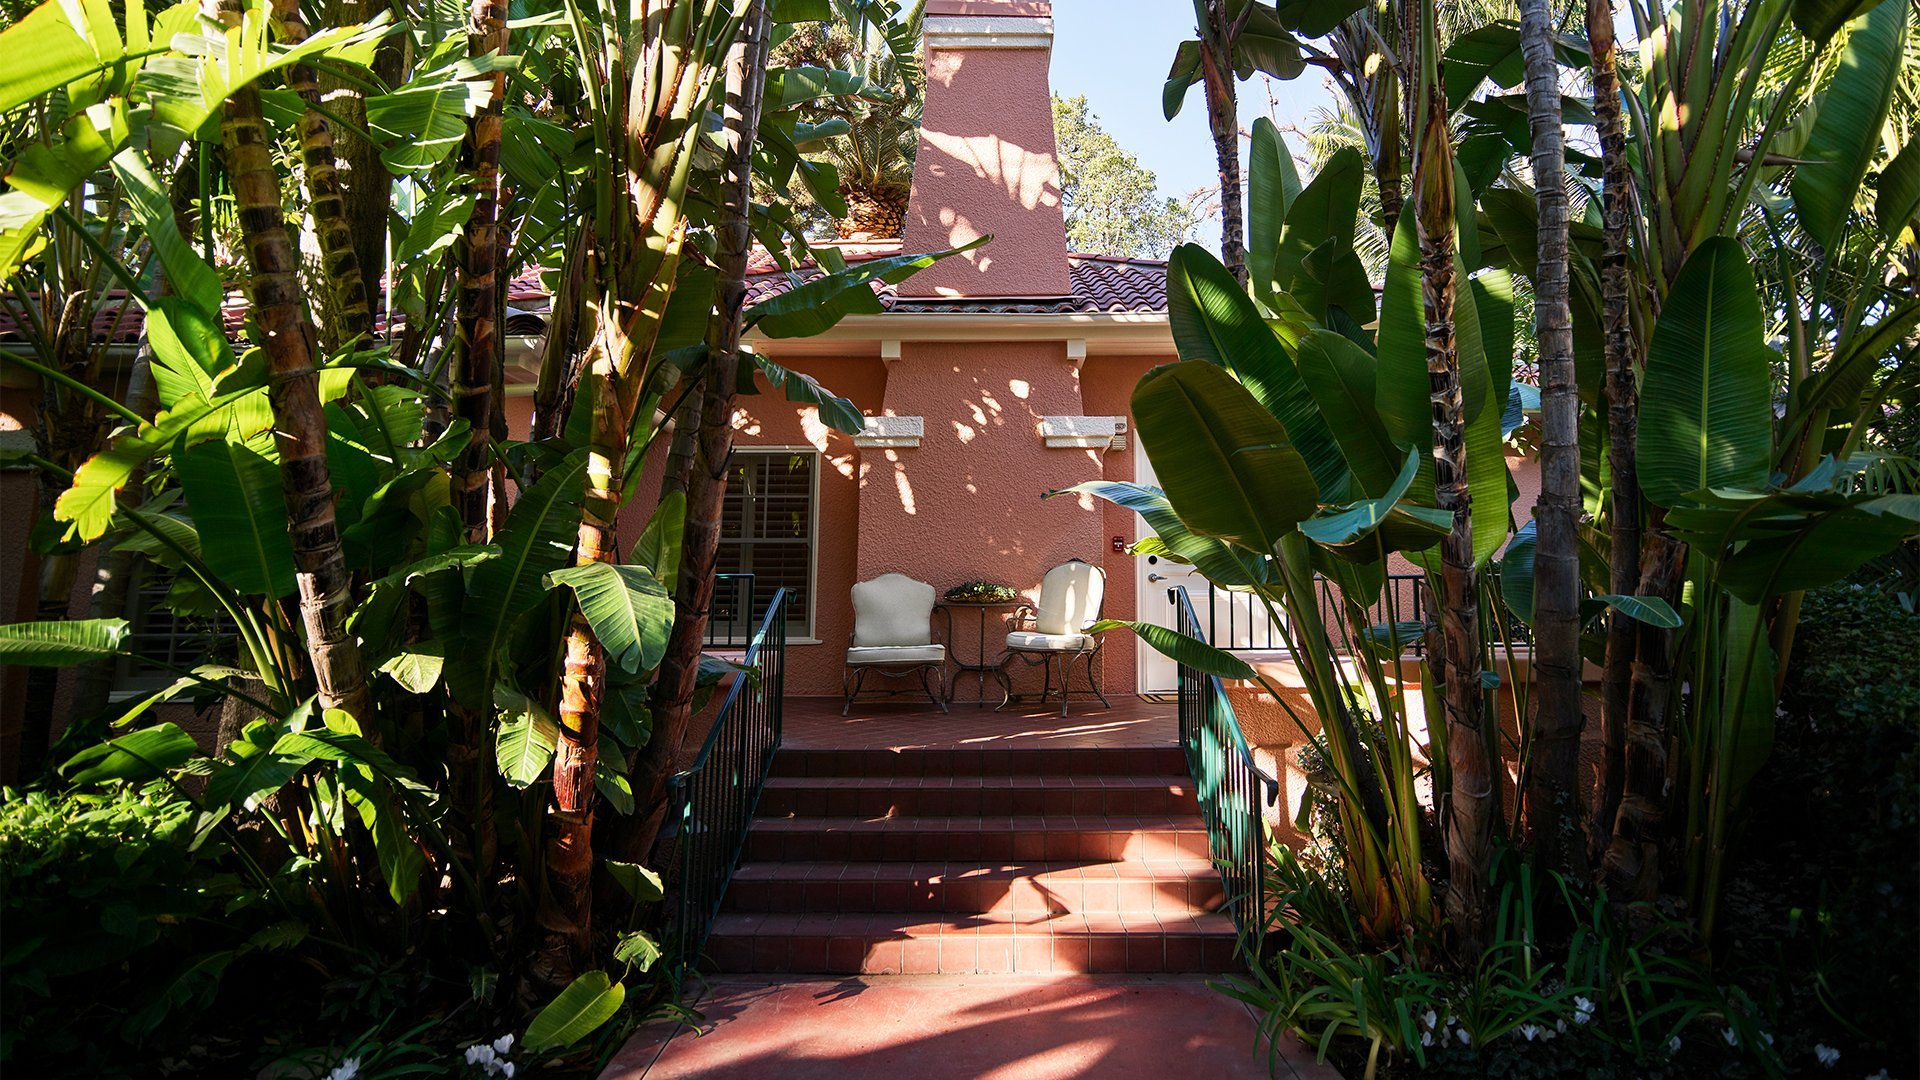 Bungalow entrance with greenery surrounding